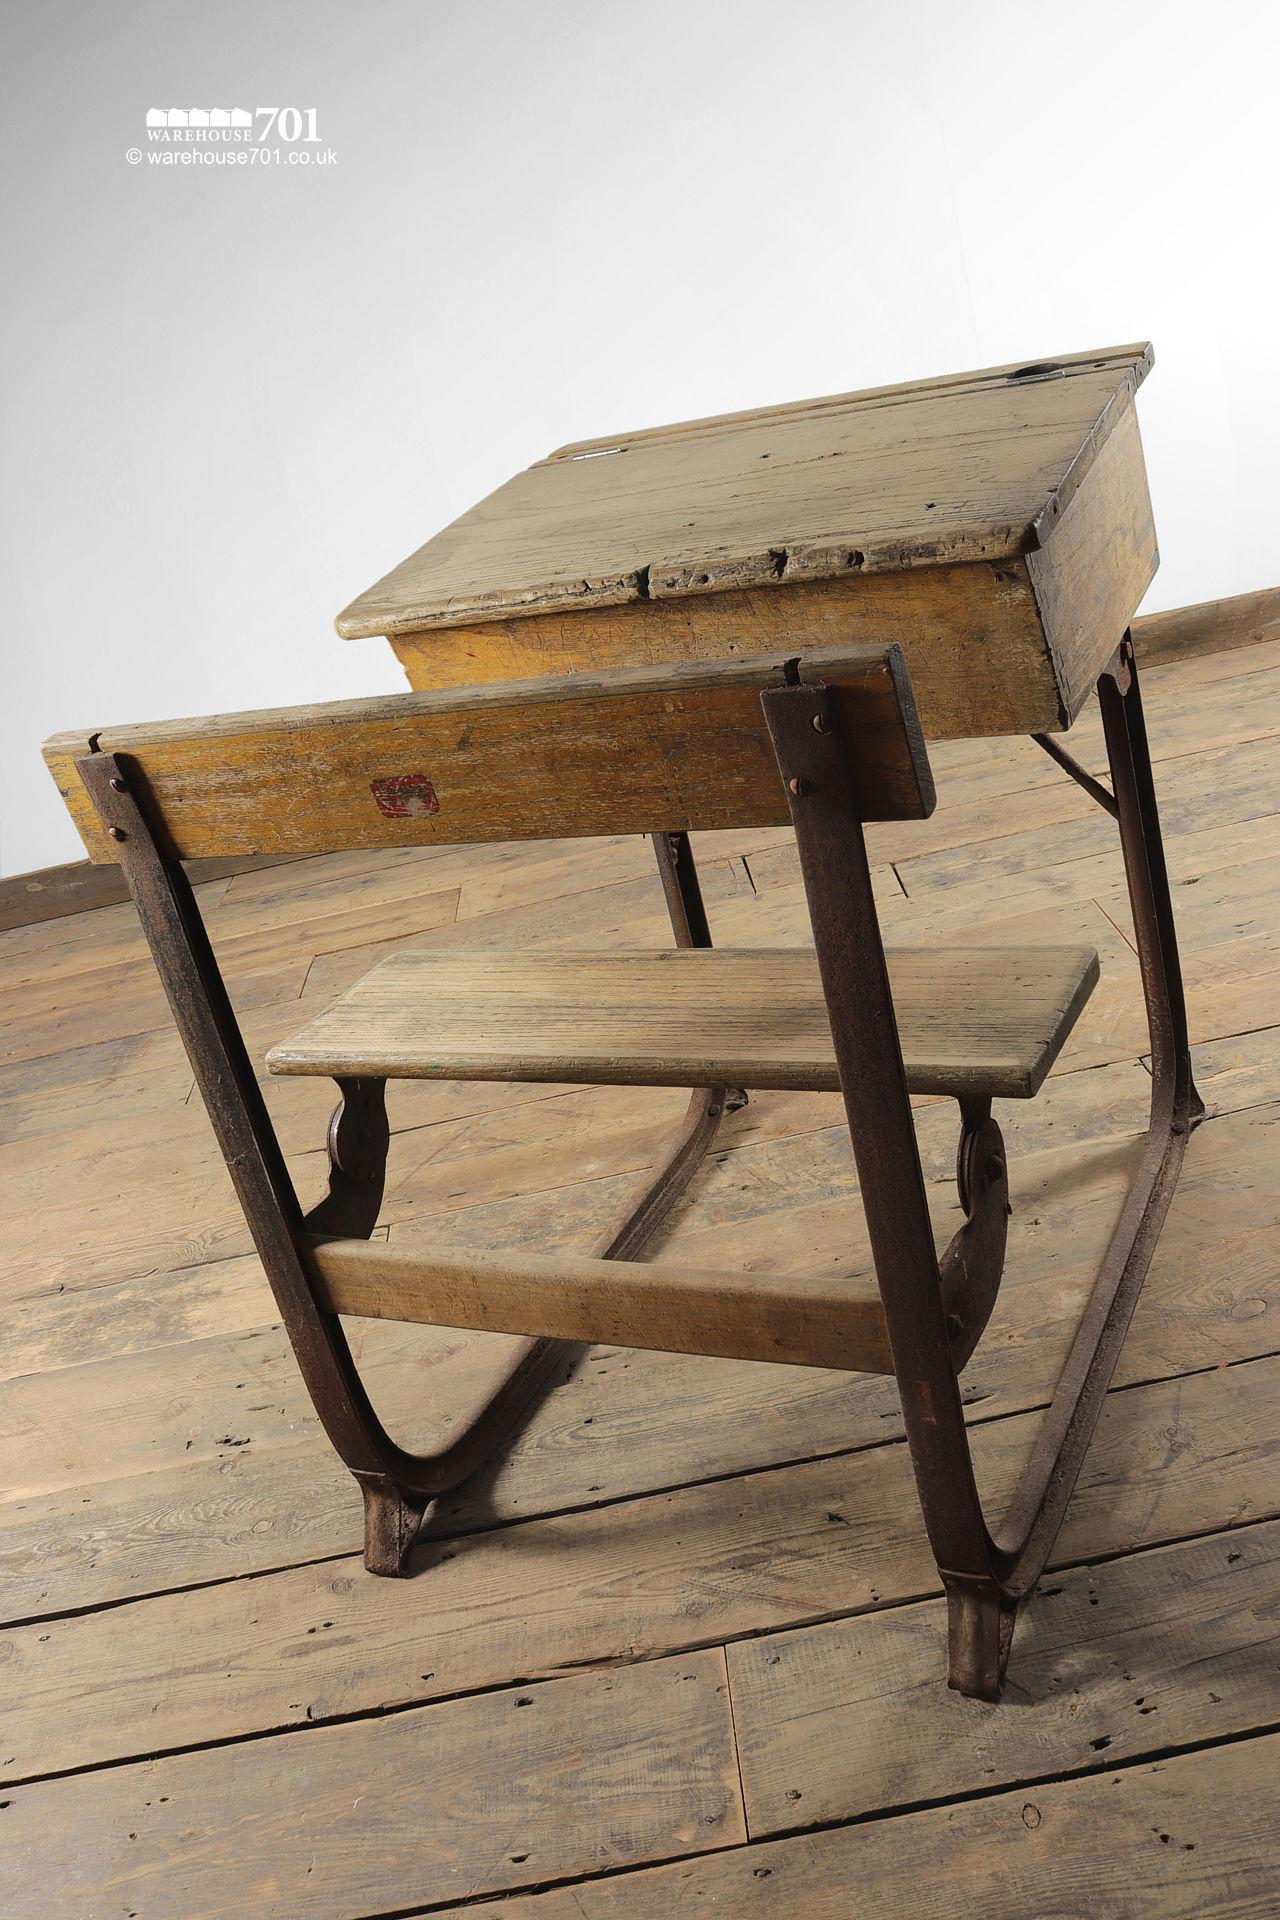 Reclaimed Wooden Childs School Desk and Seat